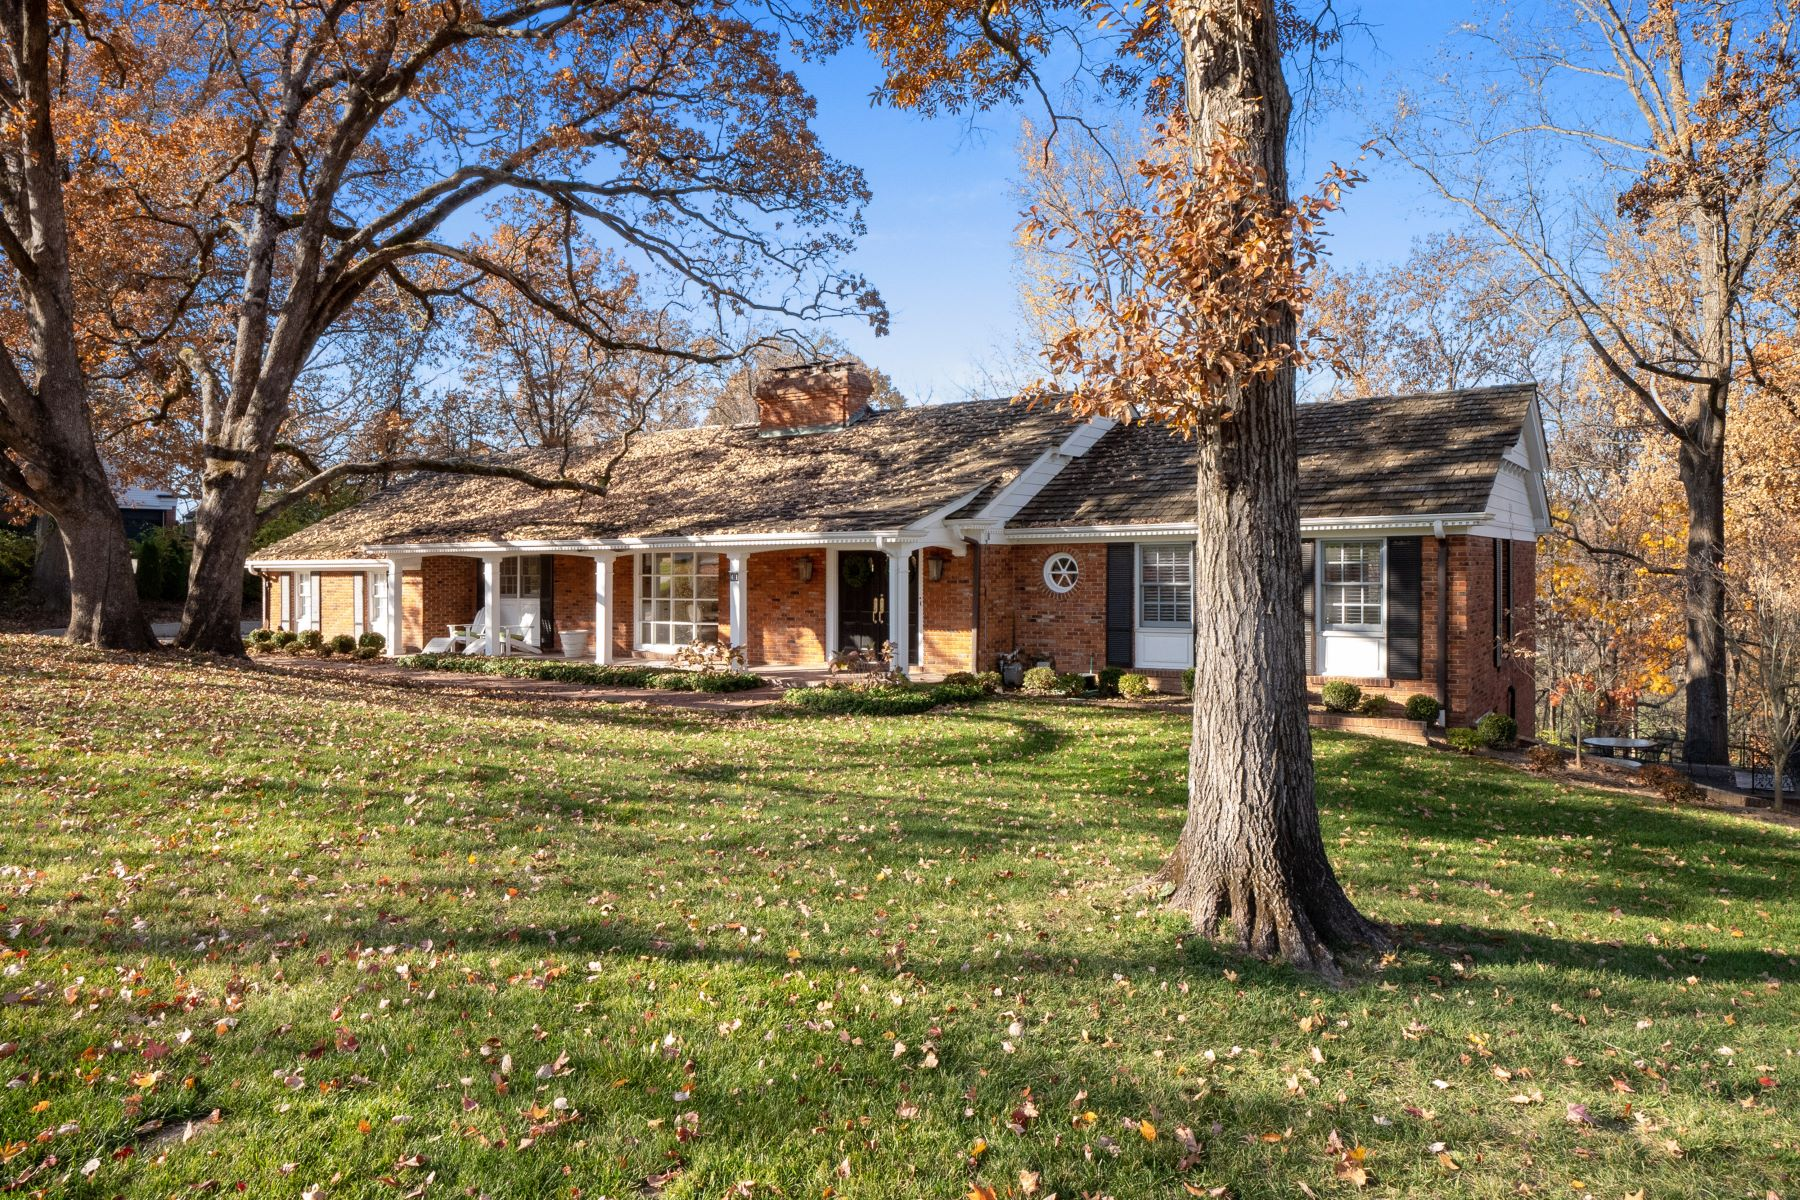 Single Family Homes for Sale at Exceptional Atrium Ranch 41 Trent Drive Ladue, Missouri 63124 United States